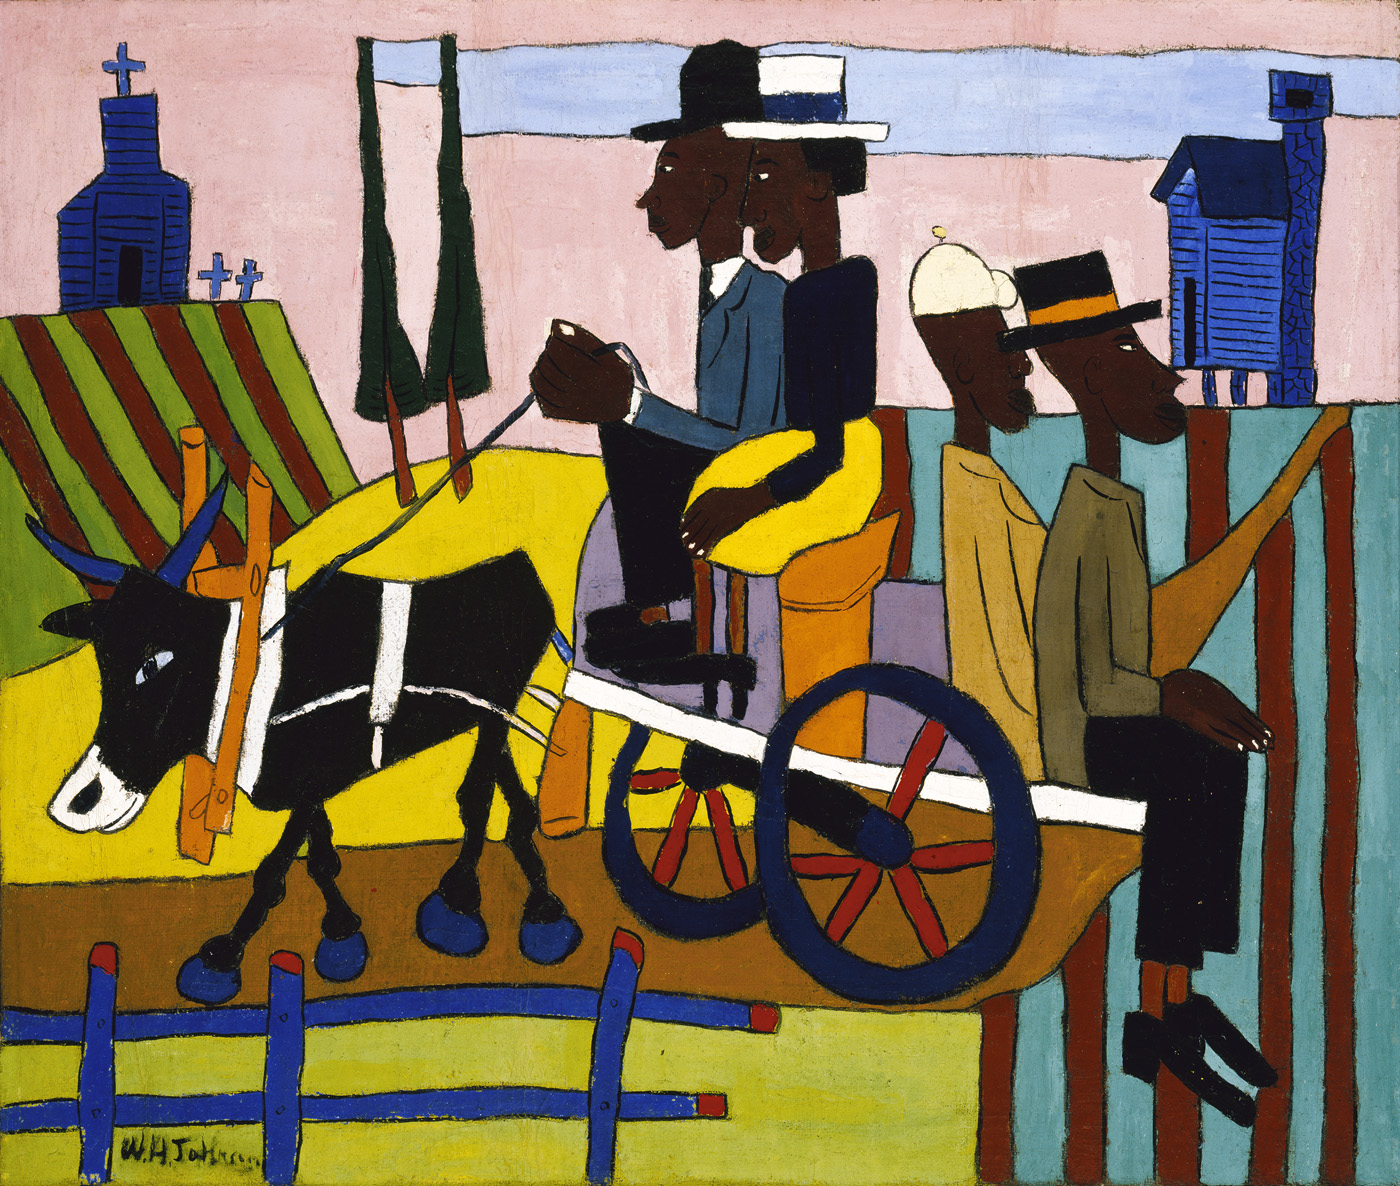 william-h-johnson-going-to-church-1940-41-saam